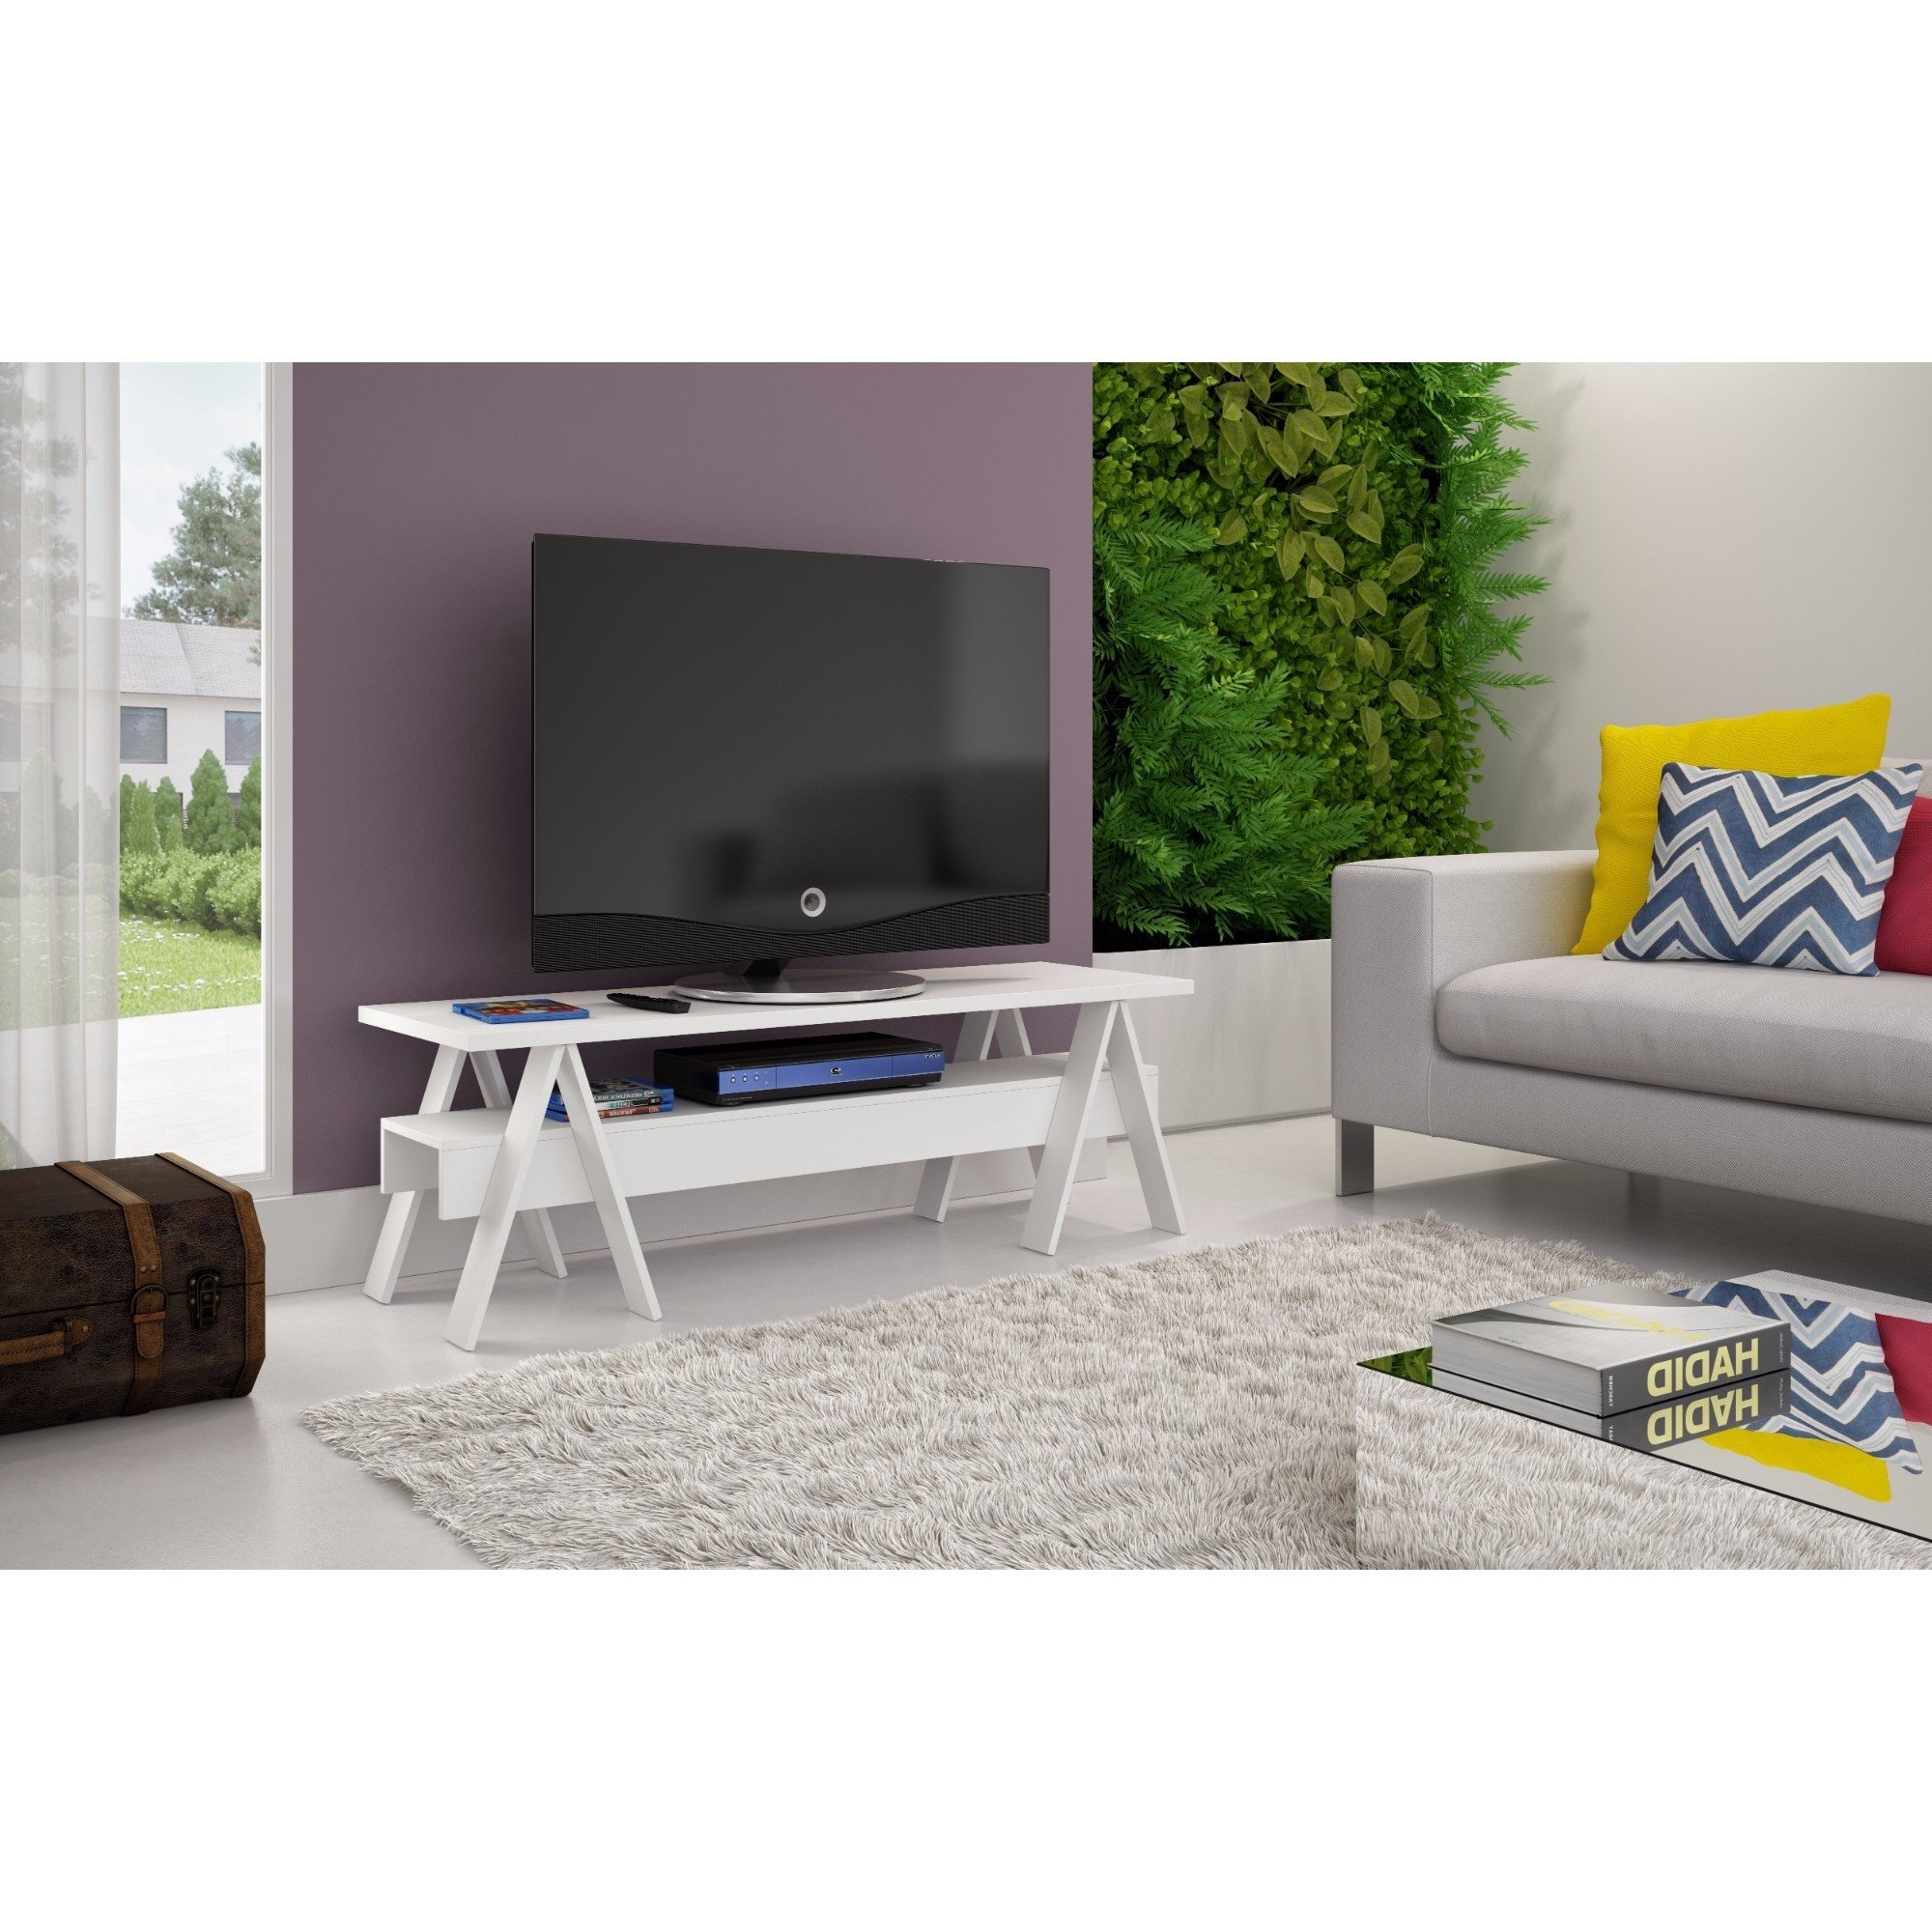 Famous Single Shelf Tv Stands Regarding Shop Manhattan Comfort Messina Single Shelf Tv Stand – Free Shipping (View 7 of 20)